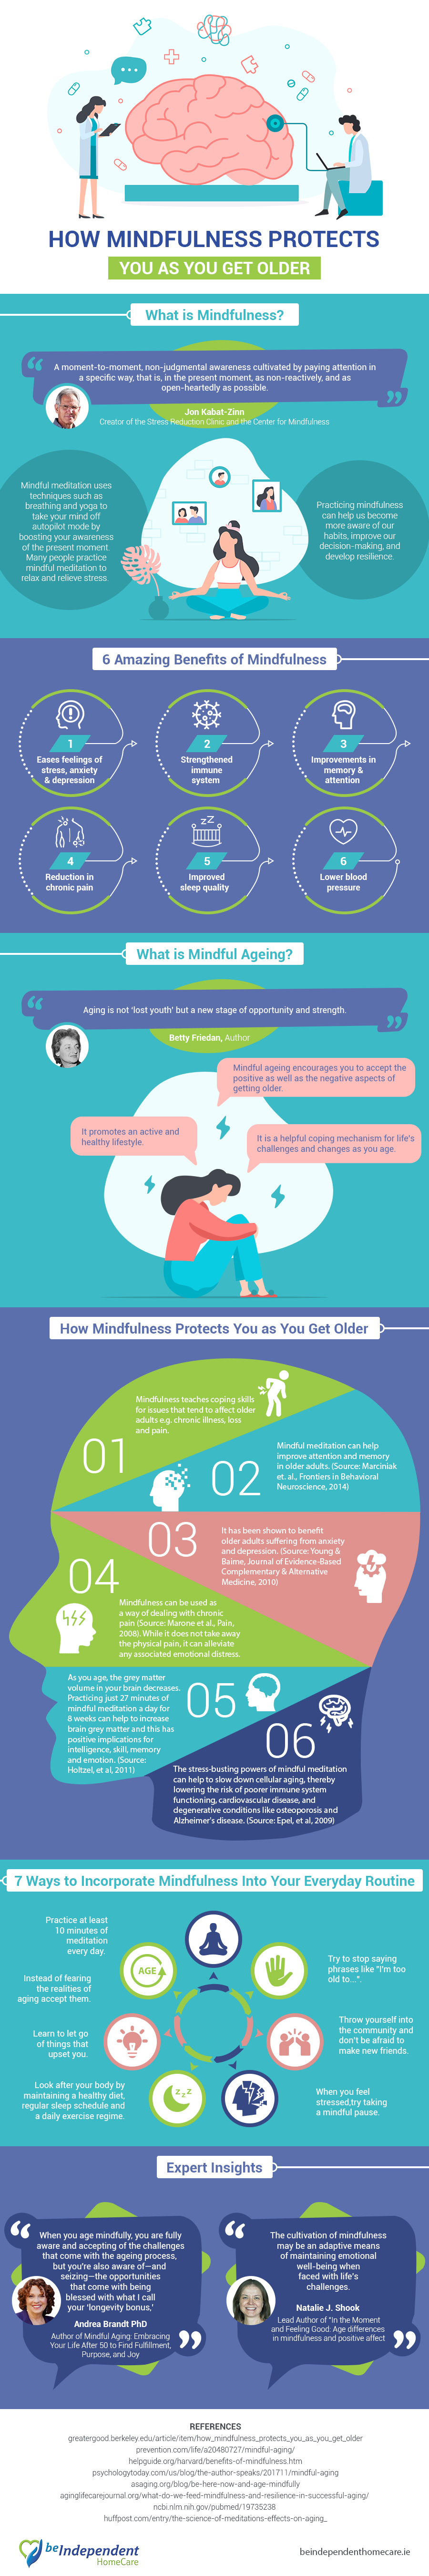 how mindfulness protects you as you get older infographic.jpgHow